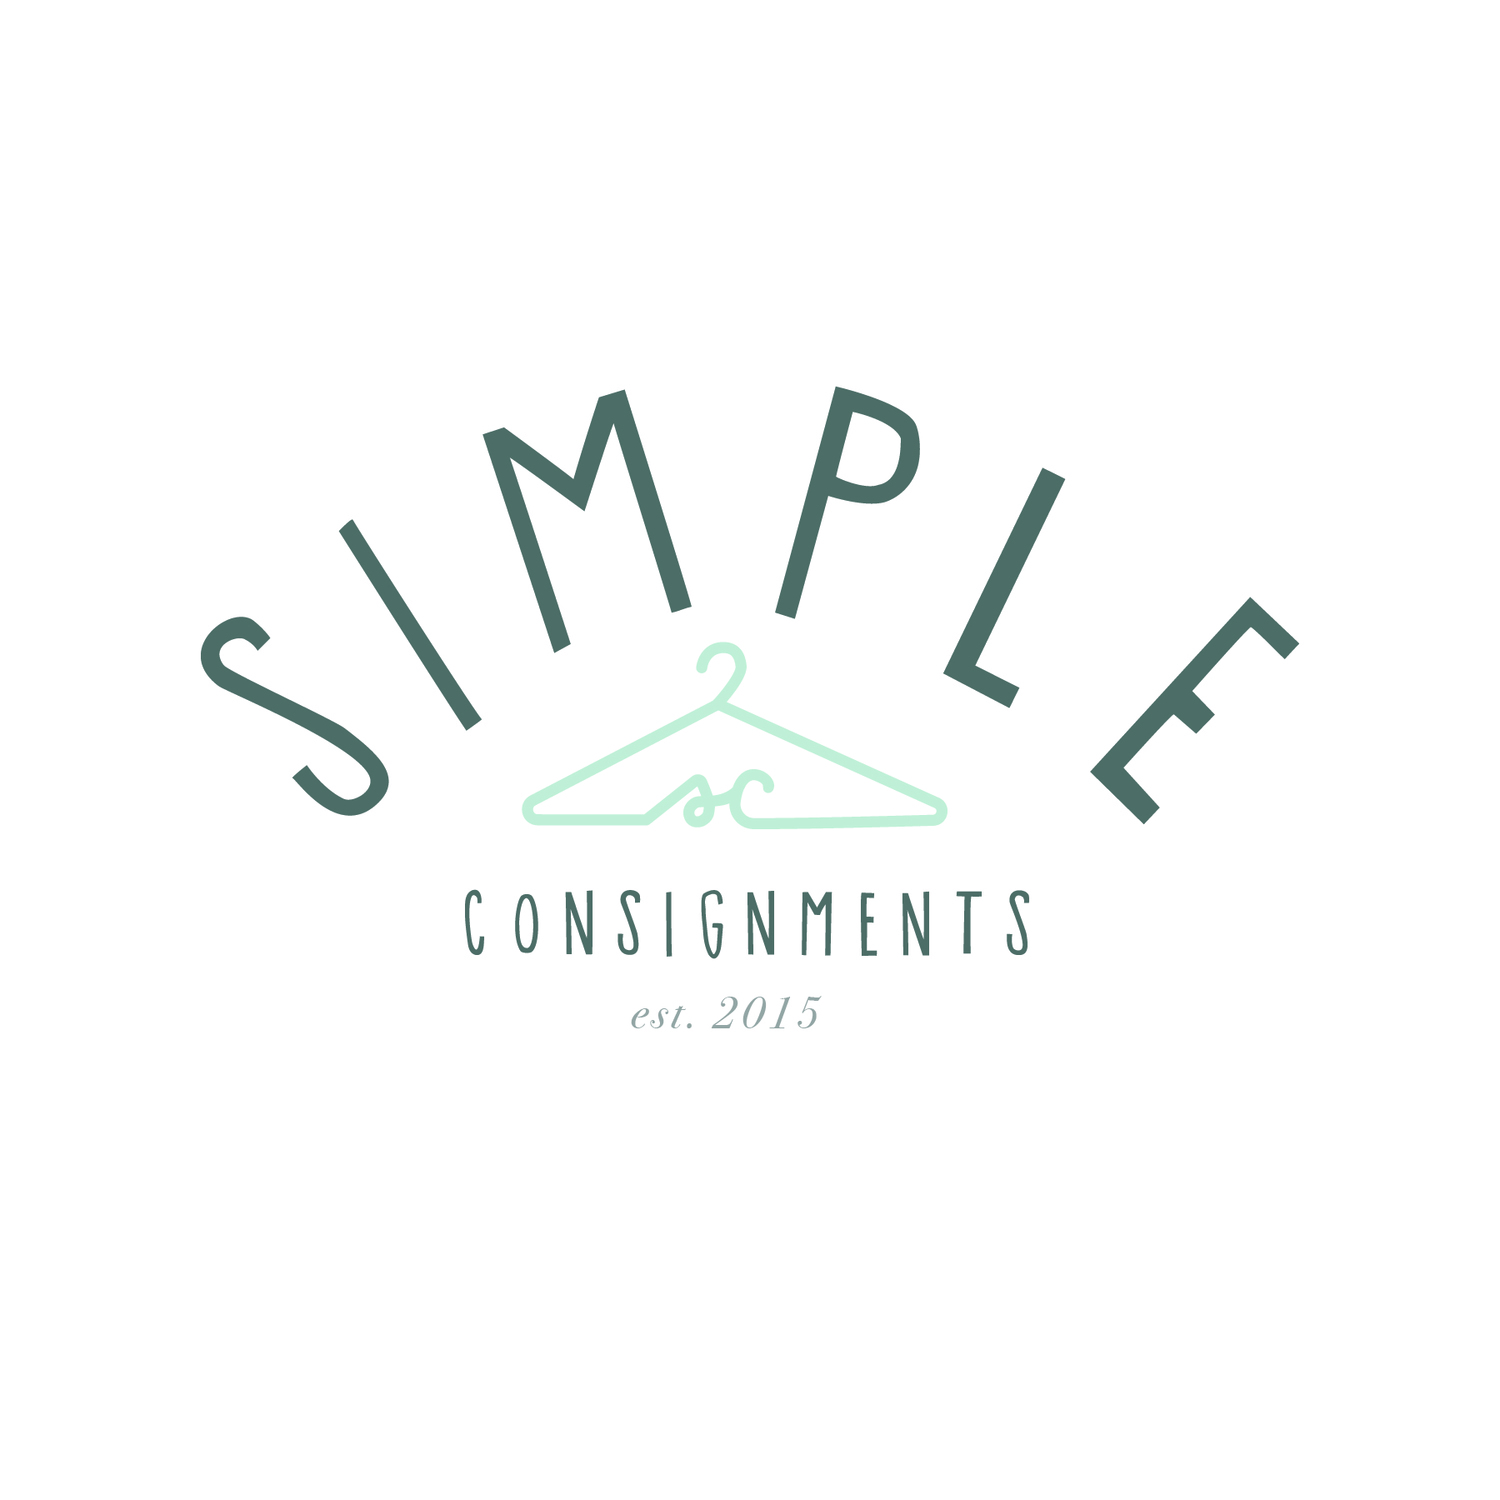 Simple Consignments